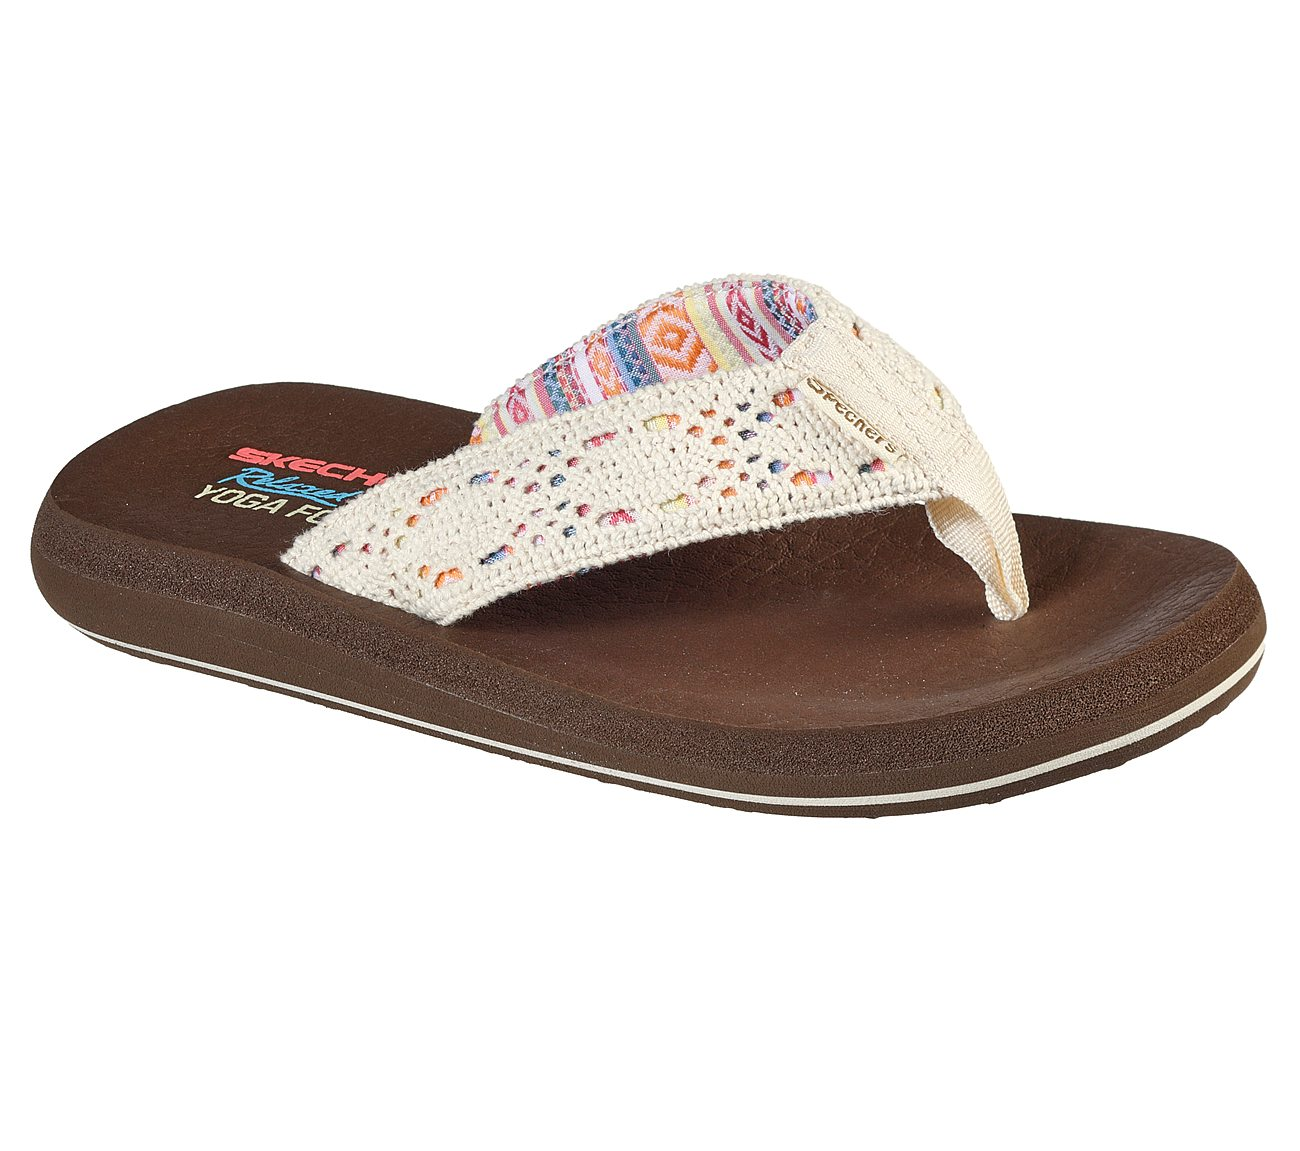 f93783db1eb Buy SKECHERS Asana Comfort Sandals Shoes only $38.00